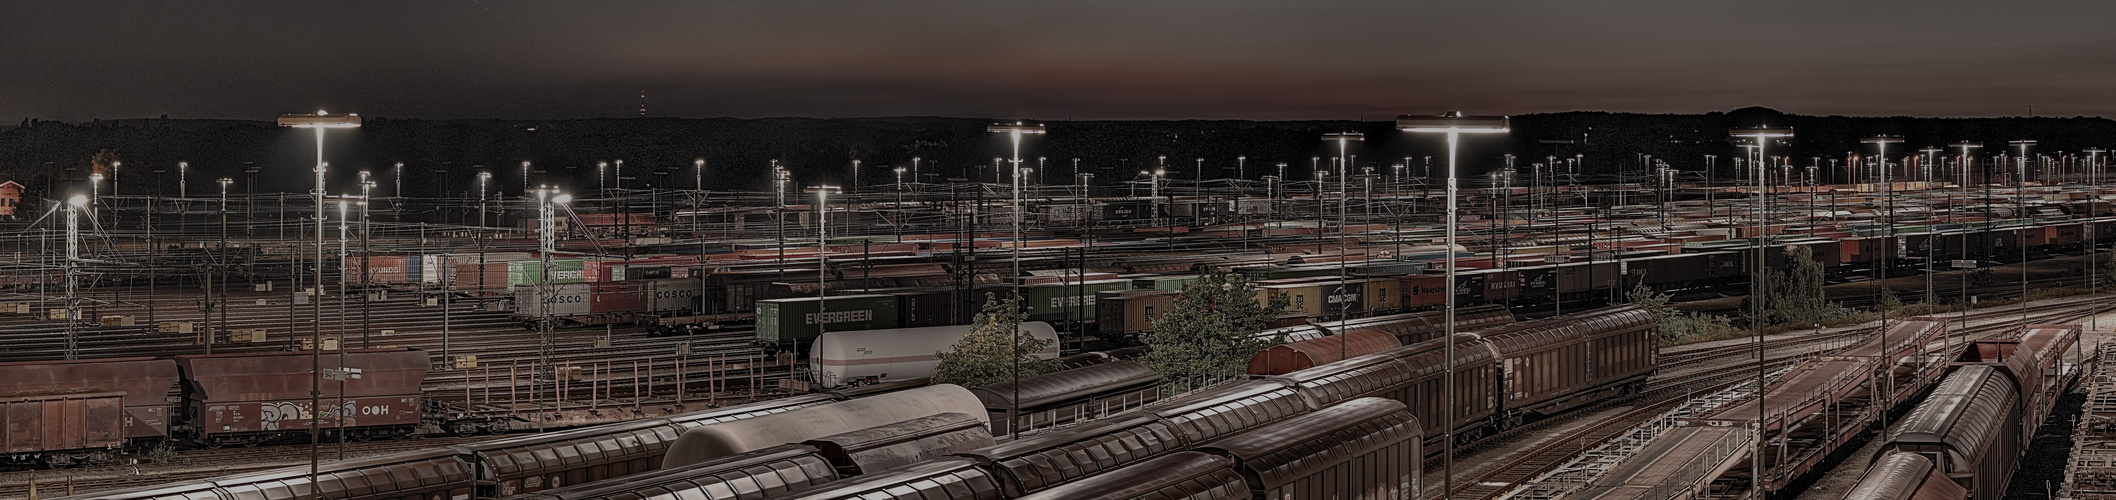 HDR Panorama Versuch